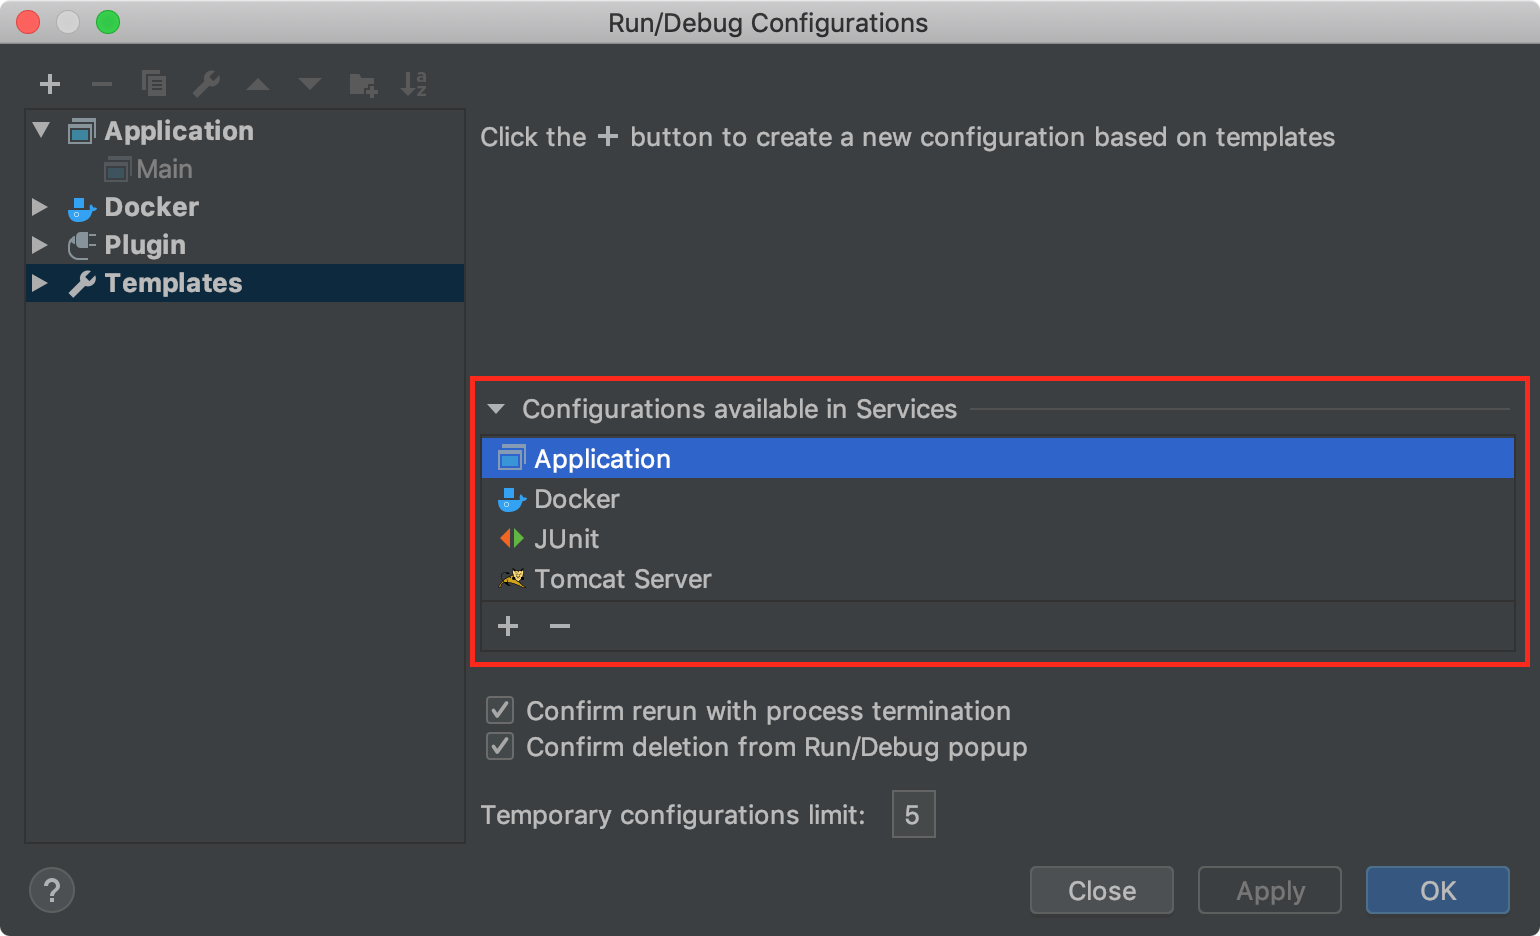 Configurations available in the Services tool window